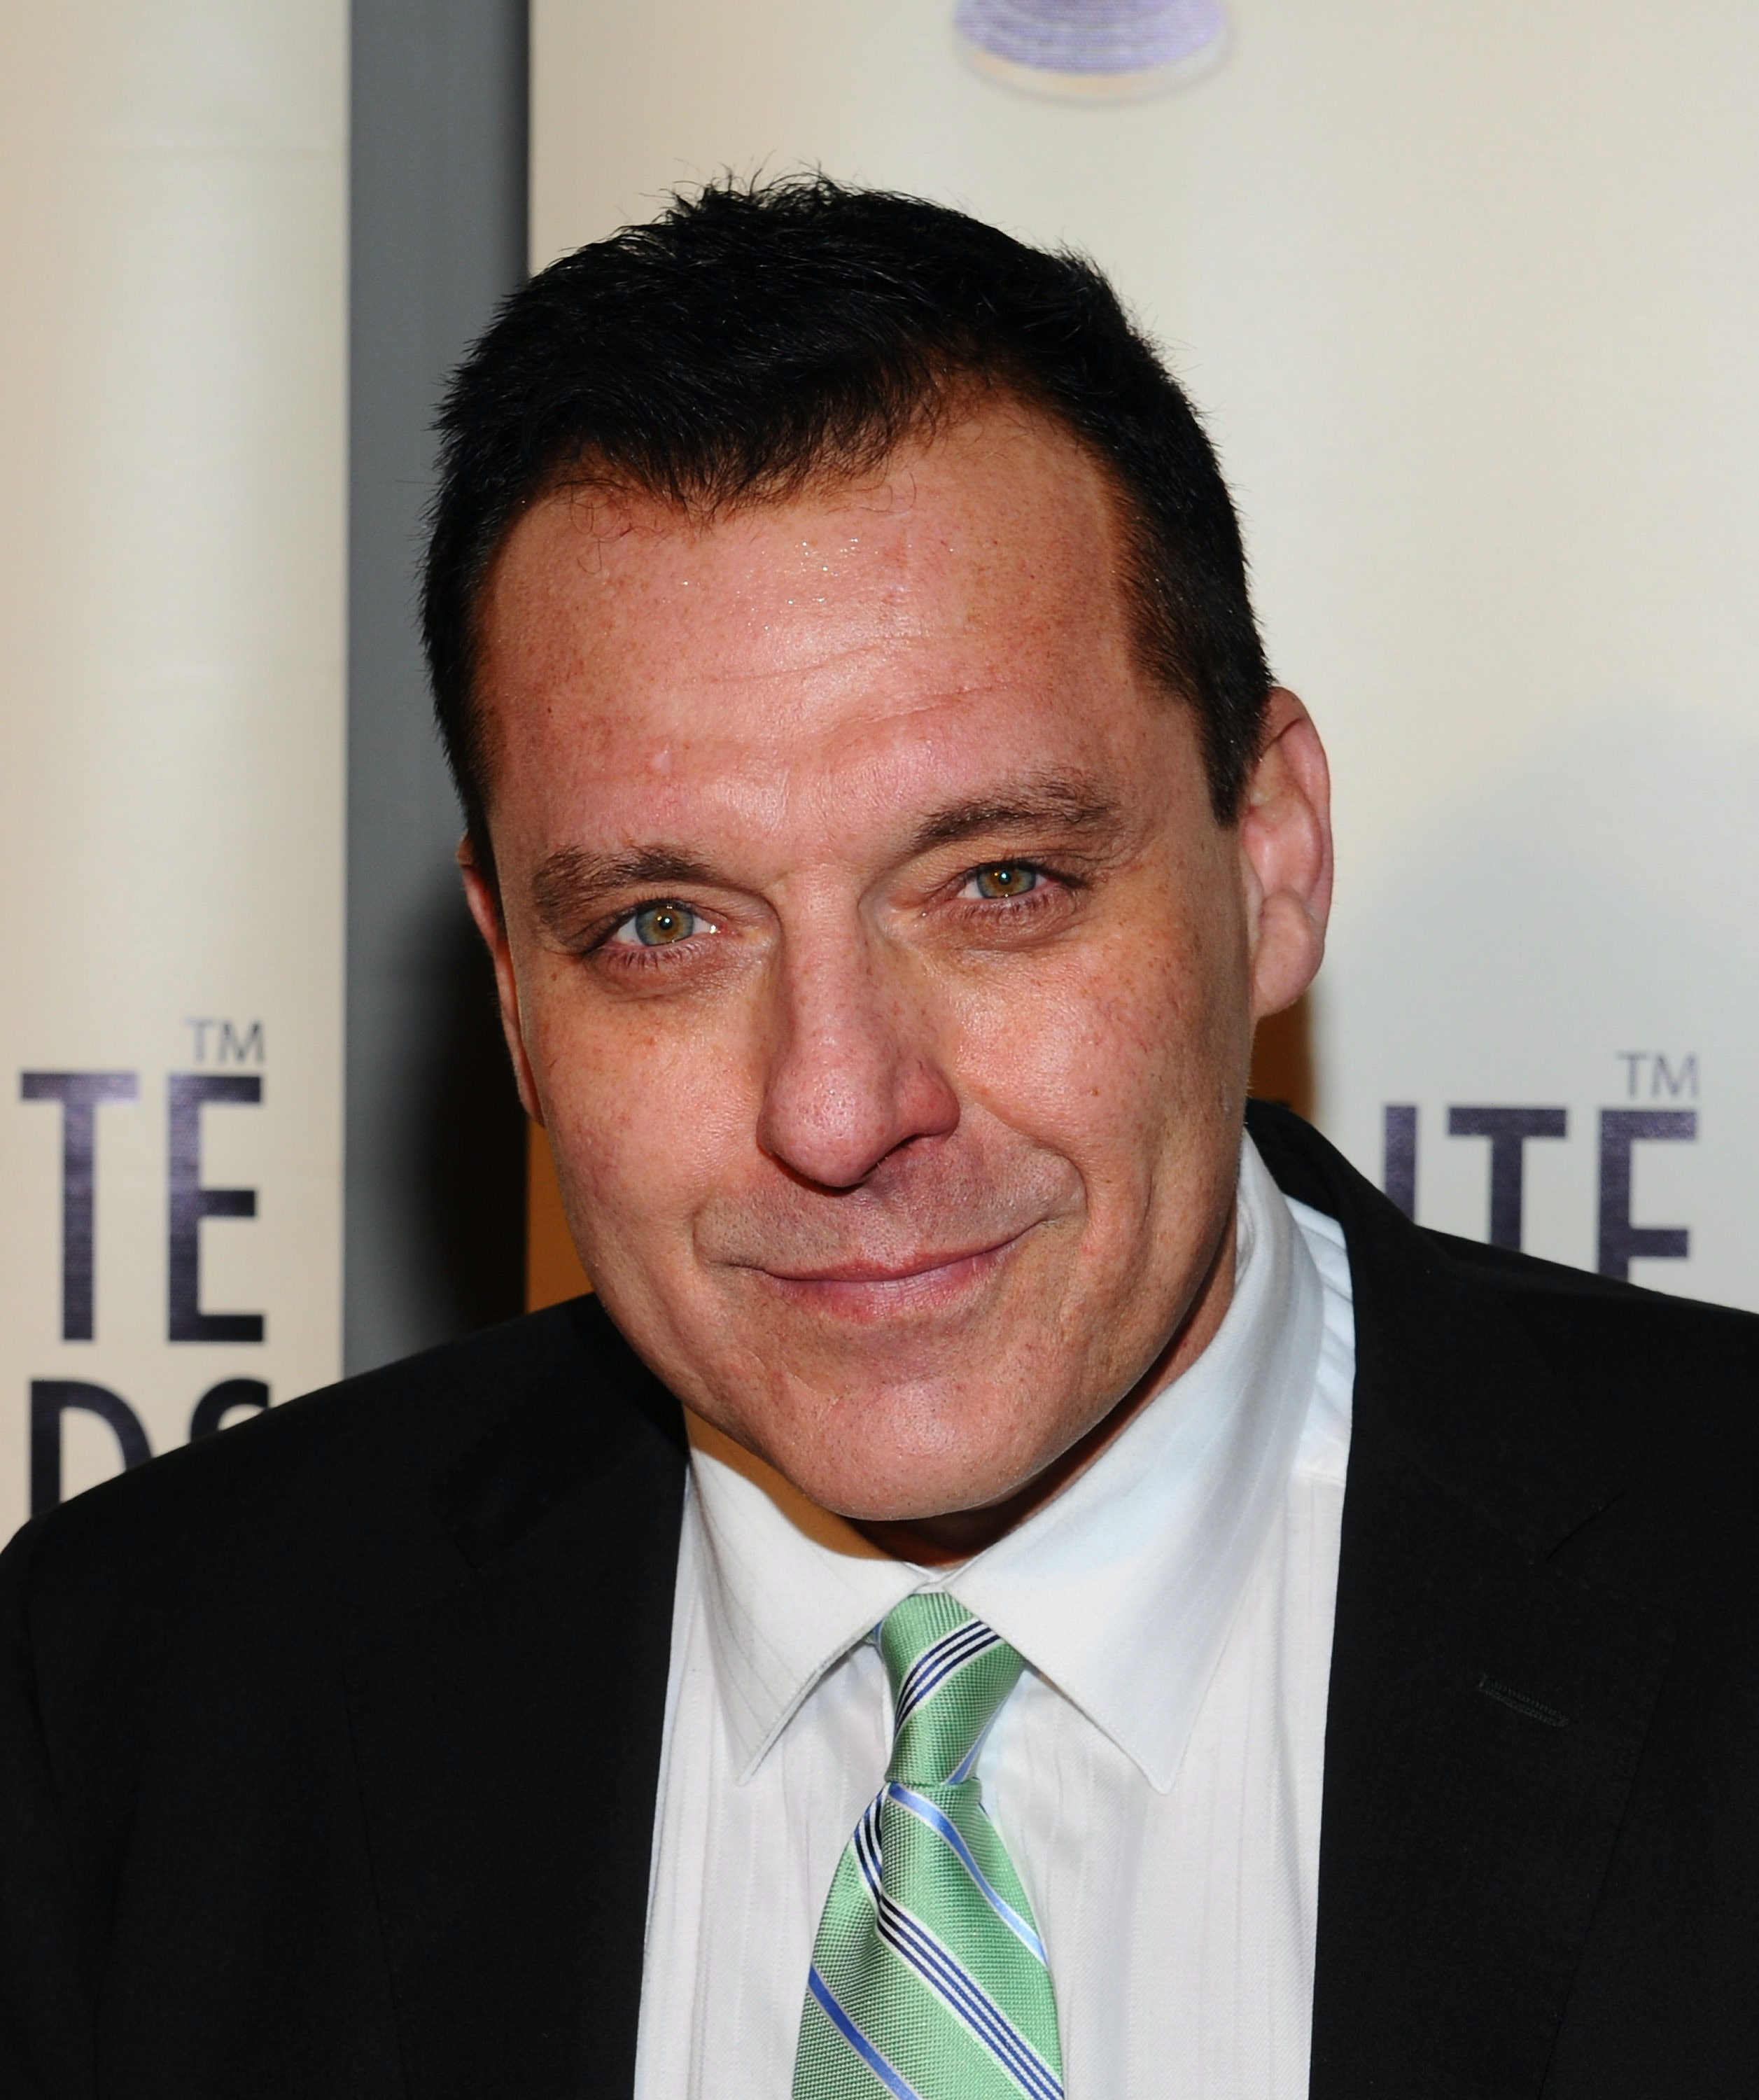 Tom Sizemore allegedly violated 11-year-old girl, removed from film set